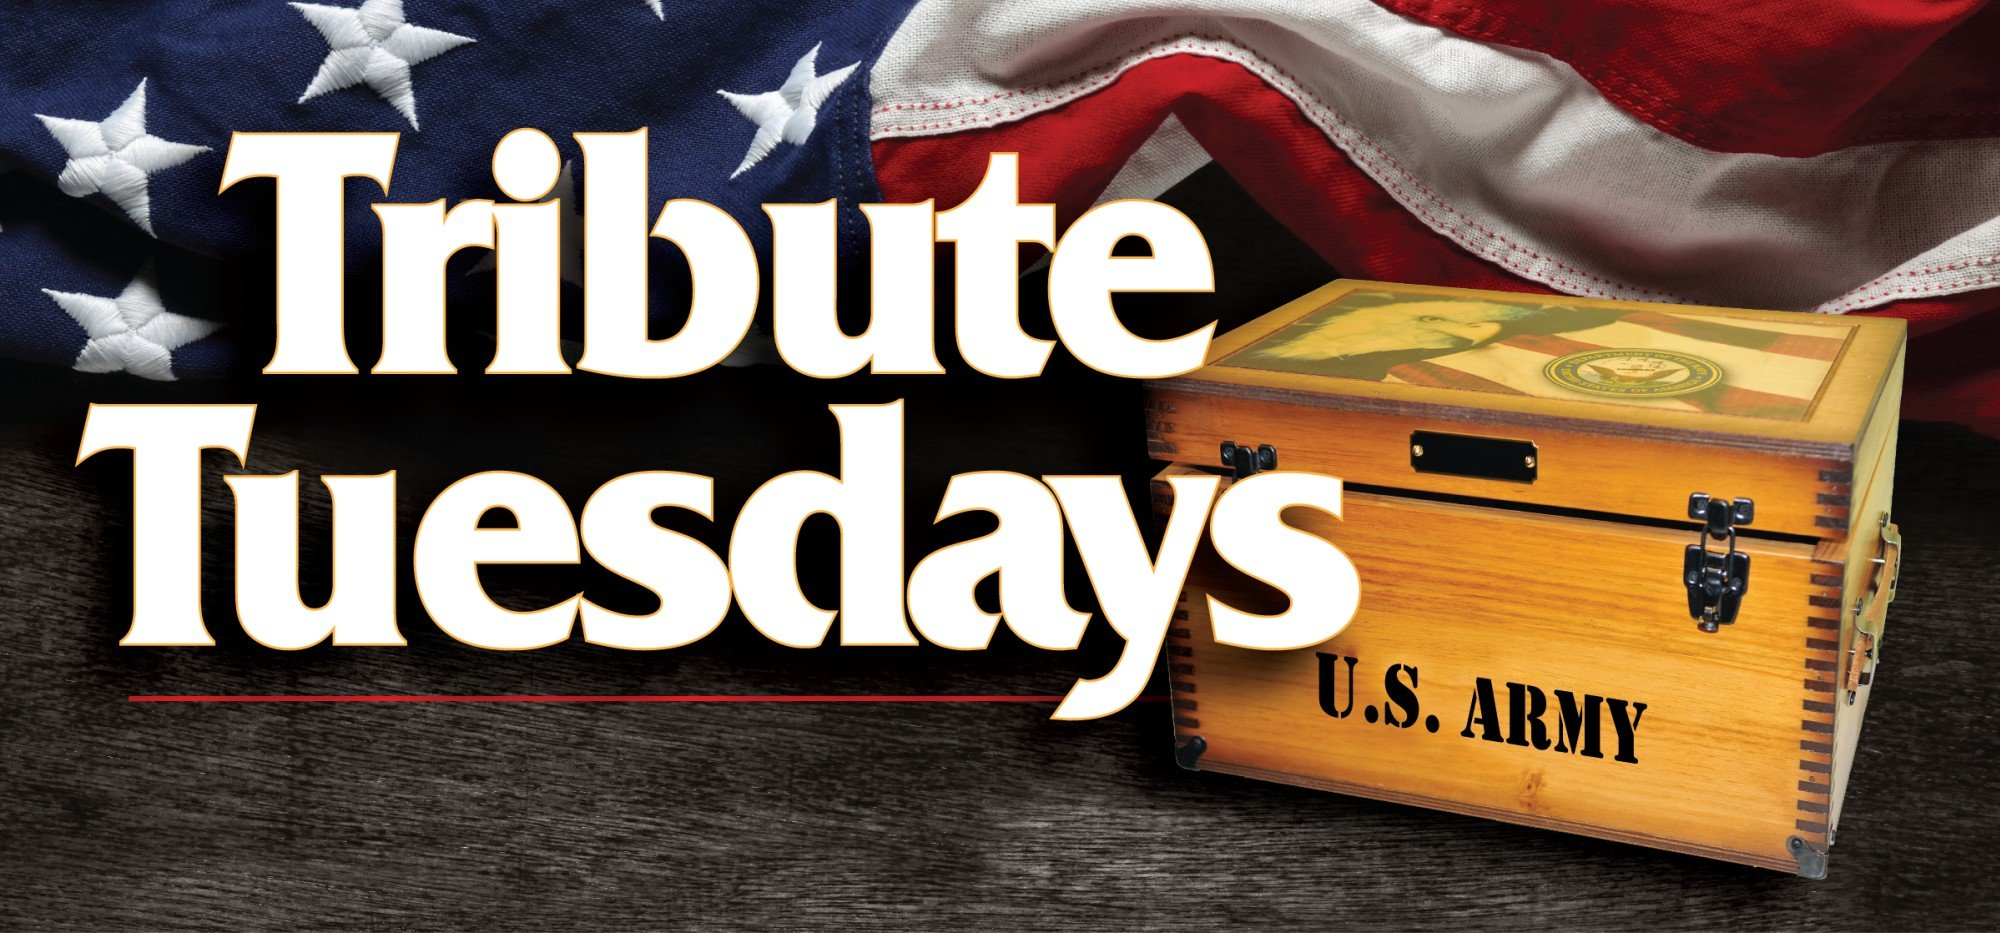 Web Header Promotion-August Tribute Tuesdays